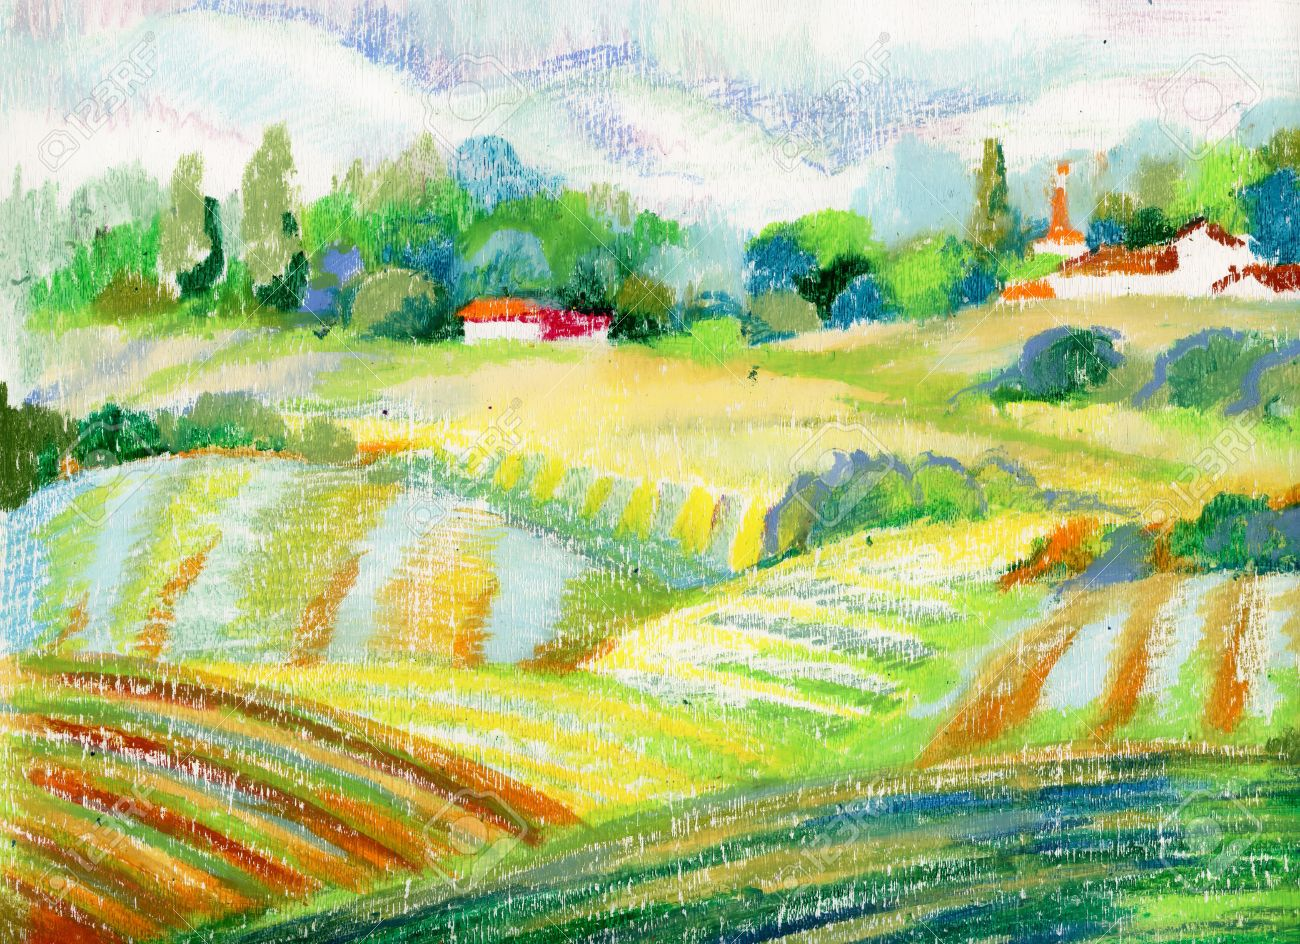 Hand painted pastel countryside landscape - 37720511